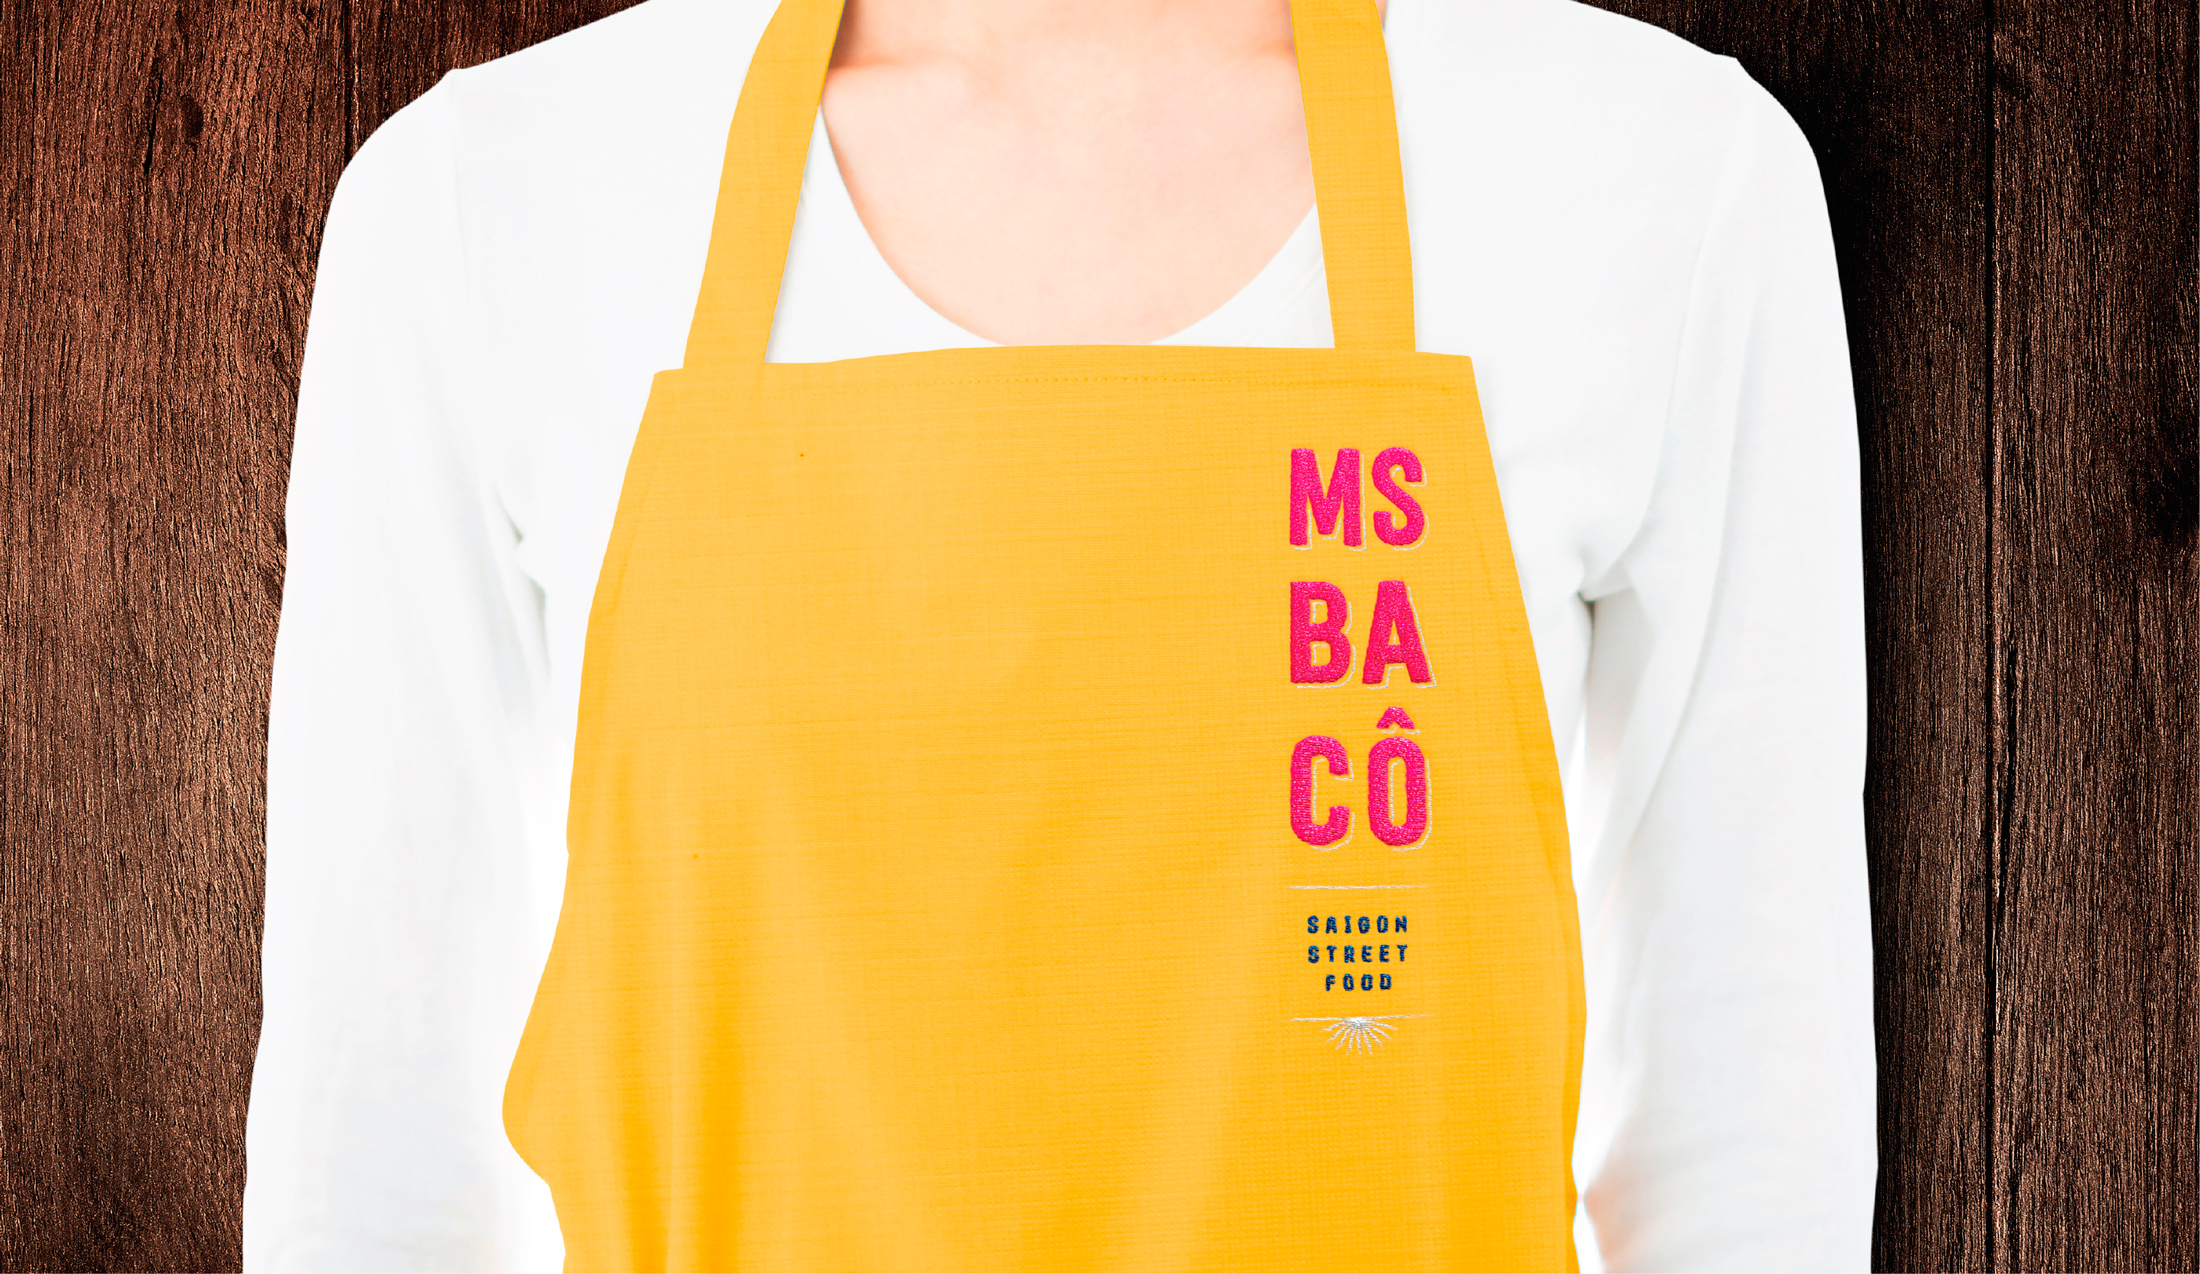 ms-ba-co-branding-design-6